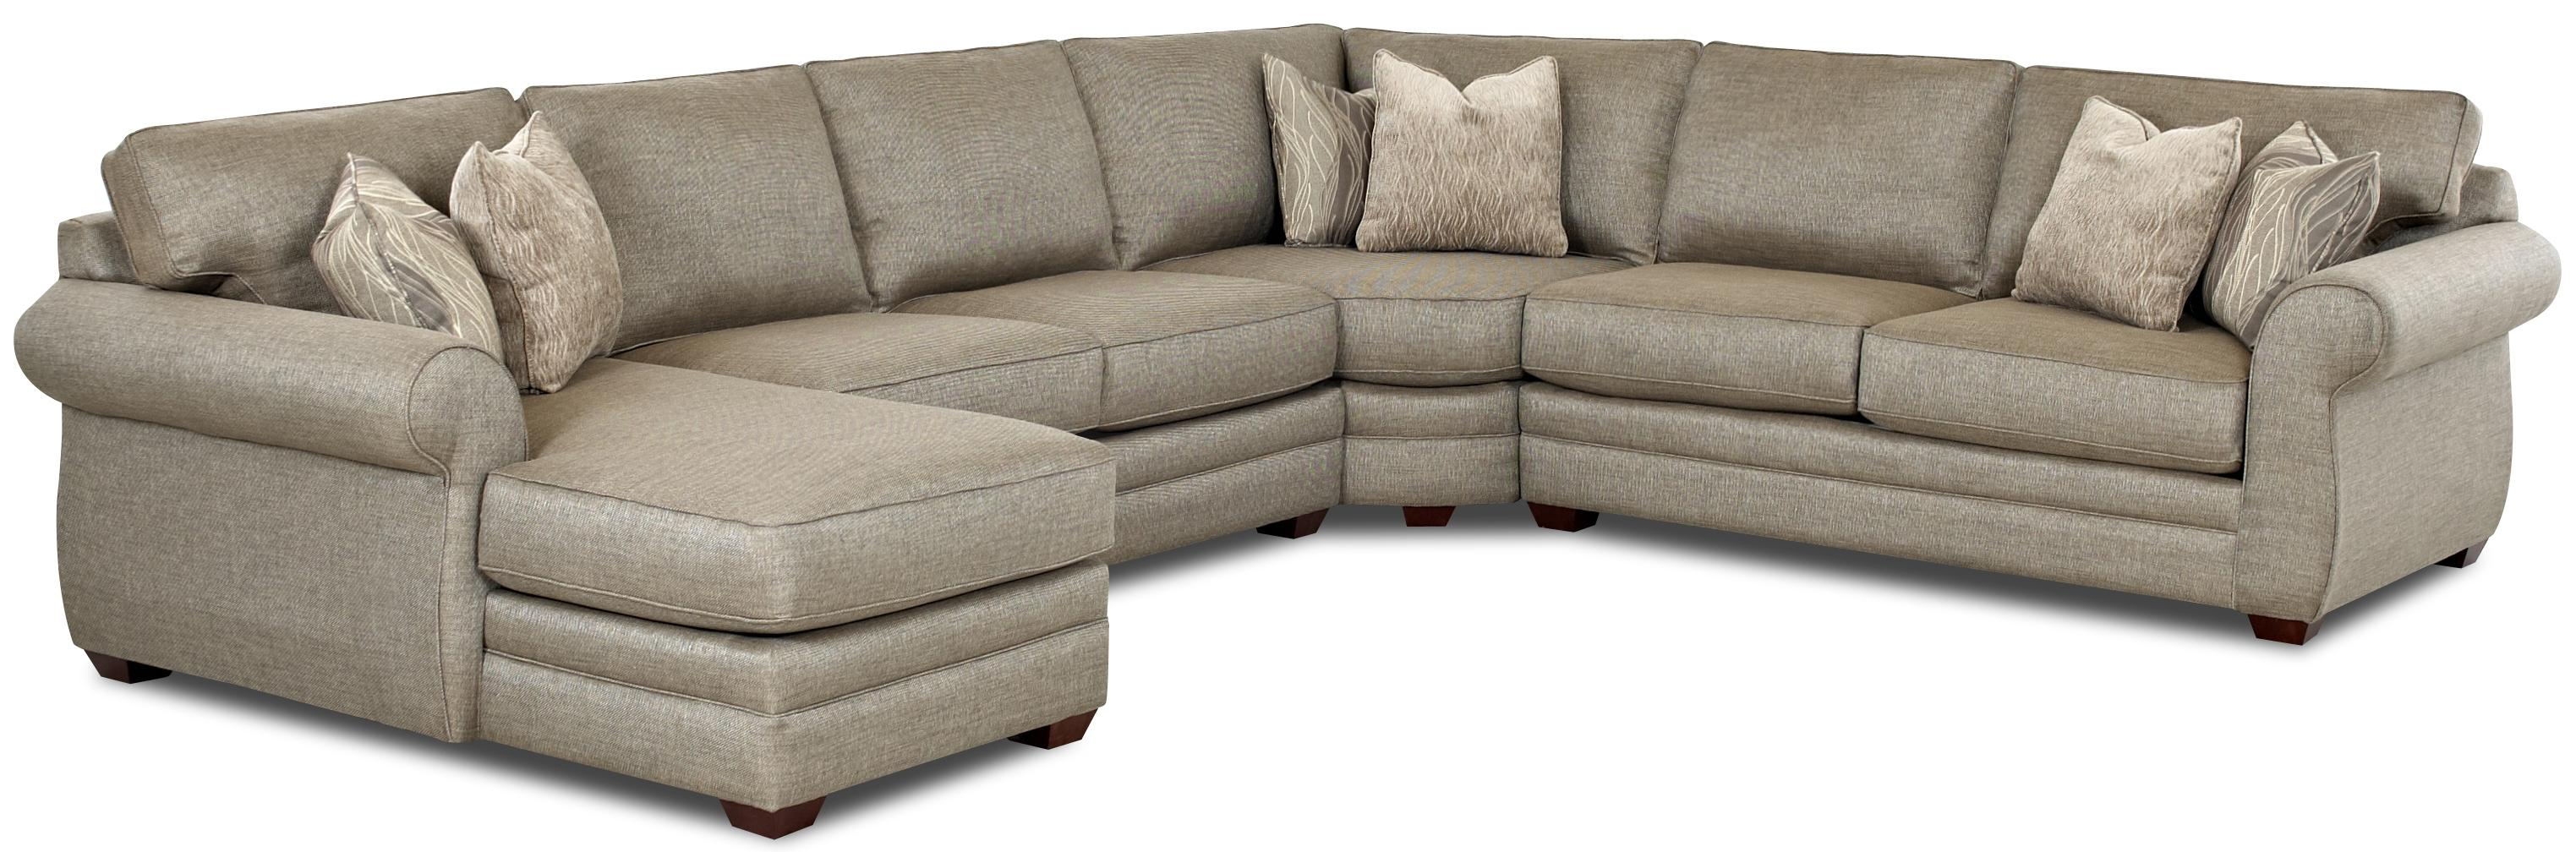 disc sectional set open sleeper sofa grey p bizard zuo modern ash